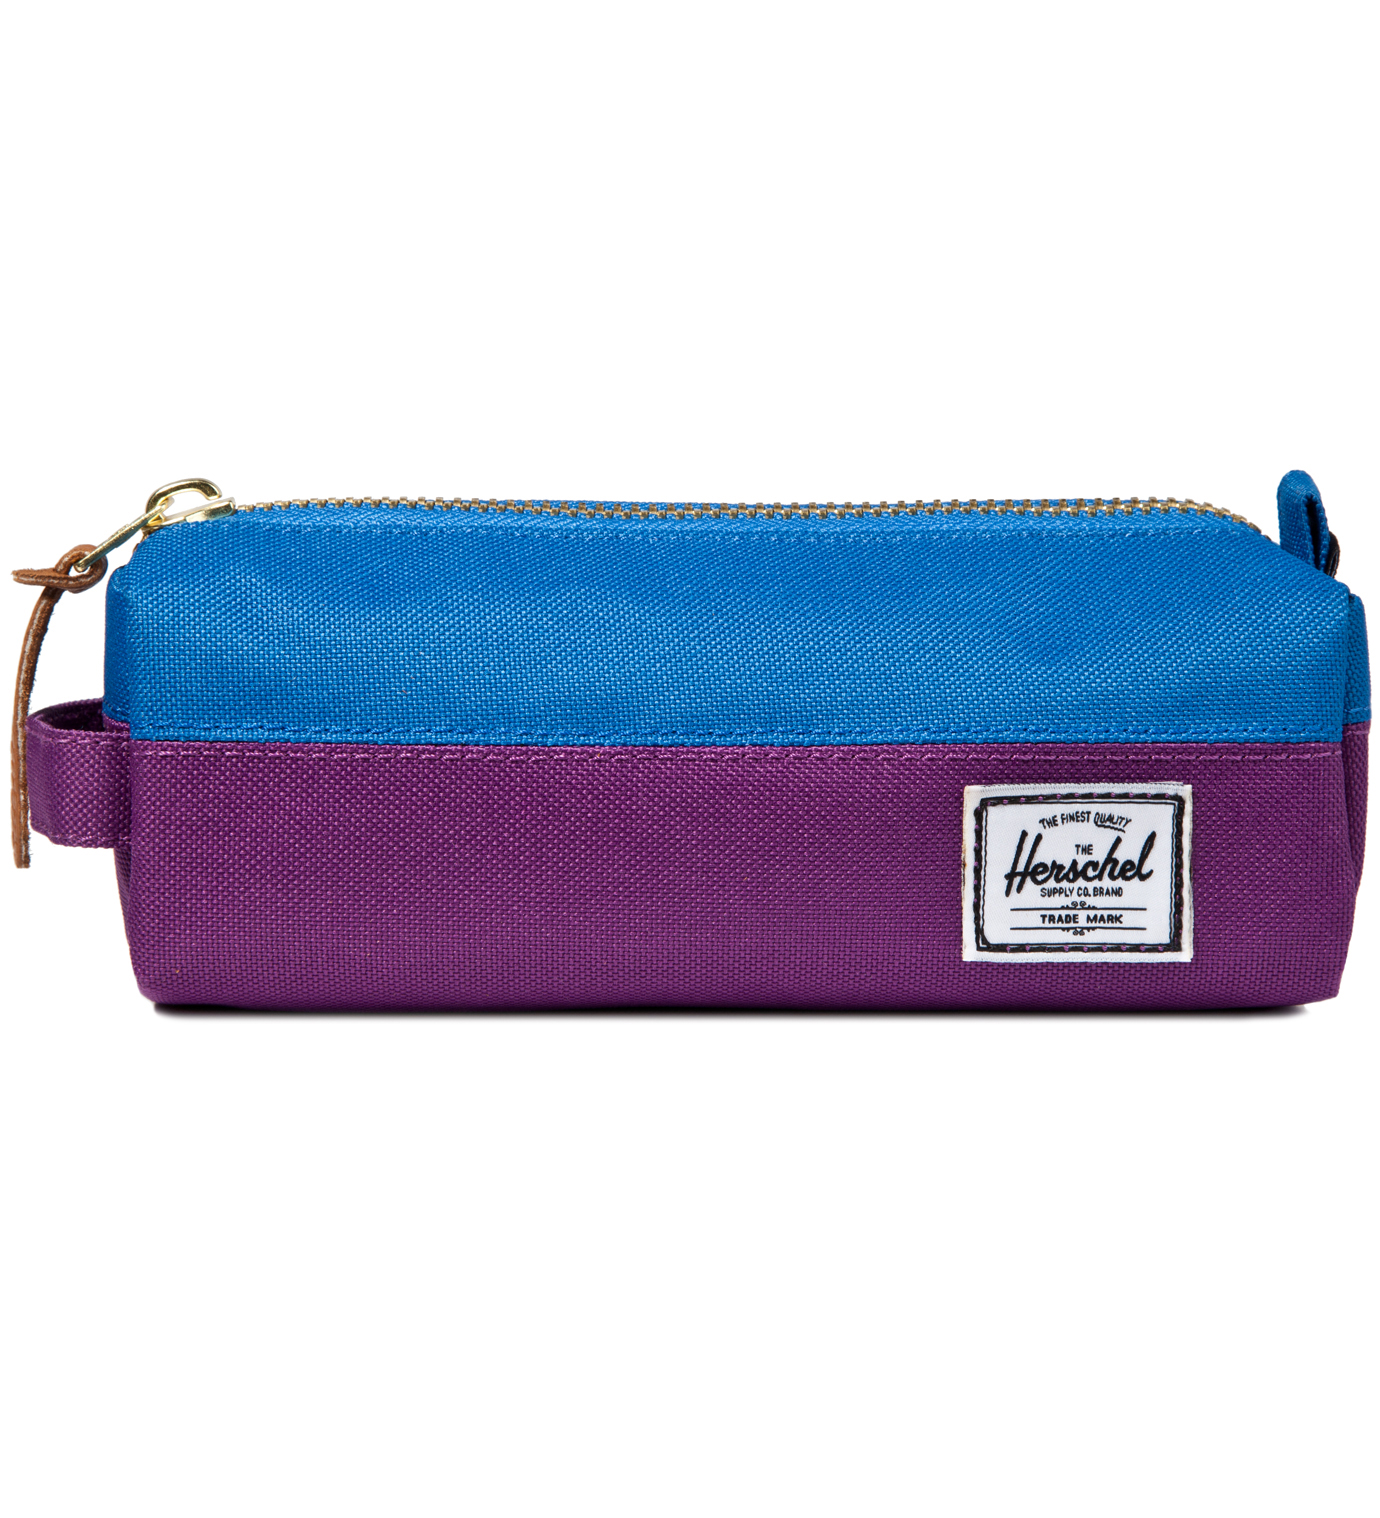 Herschel Supply Co. Purple Cobalt Settlement Case